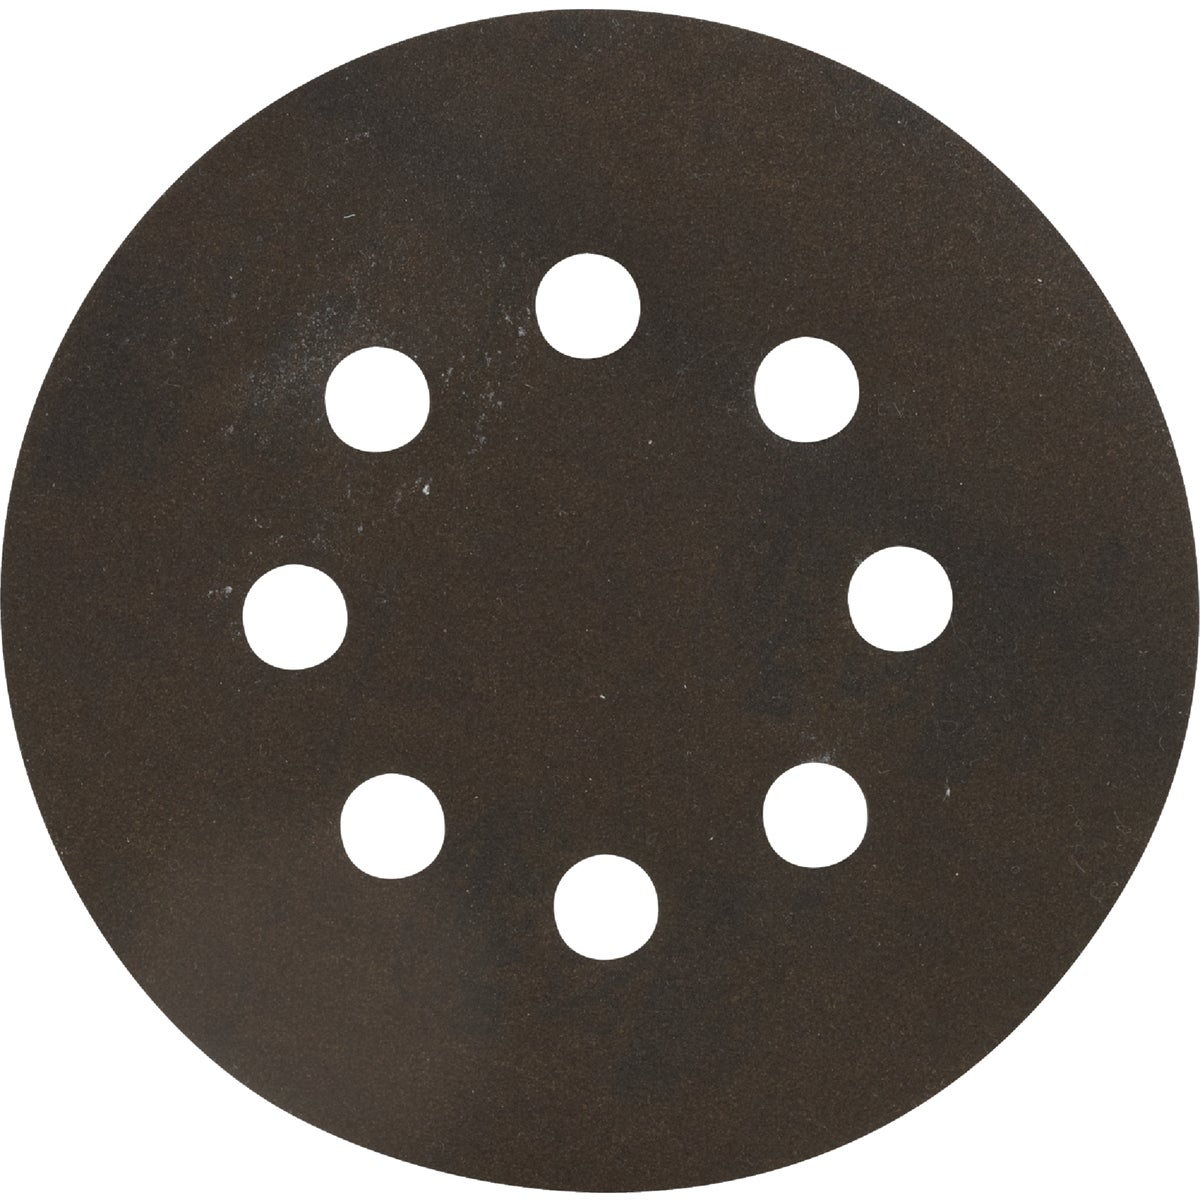 4PK 8HL 220G SANDPAPER - 354002 by Ali Industries Inc